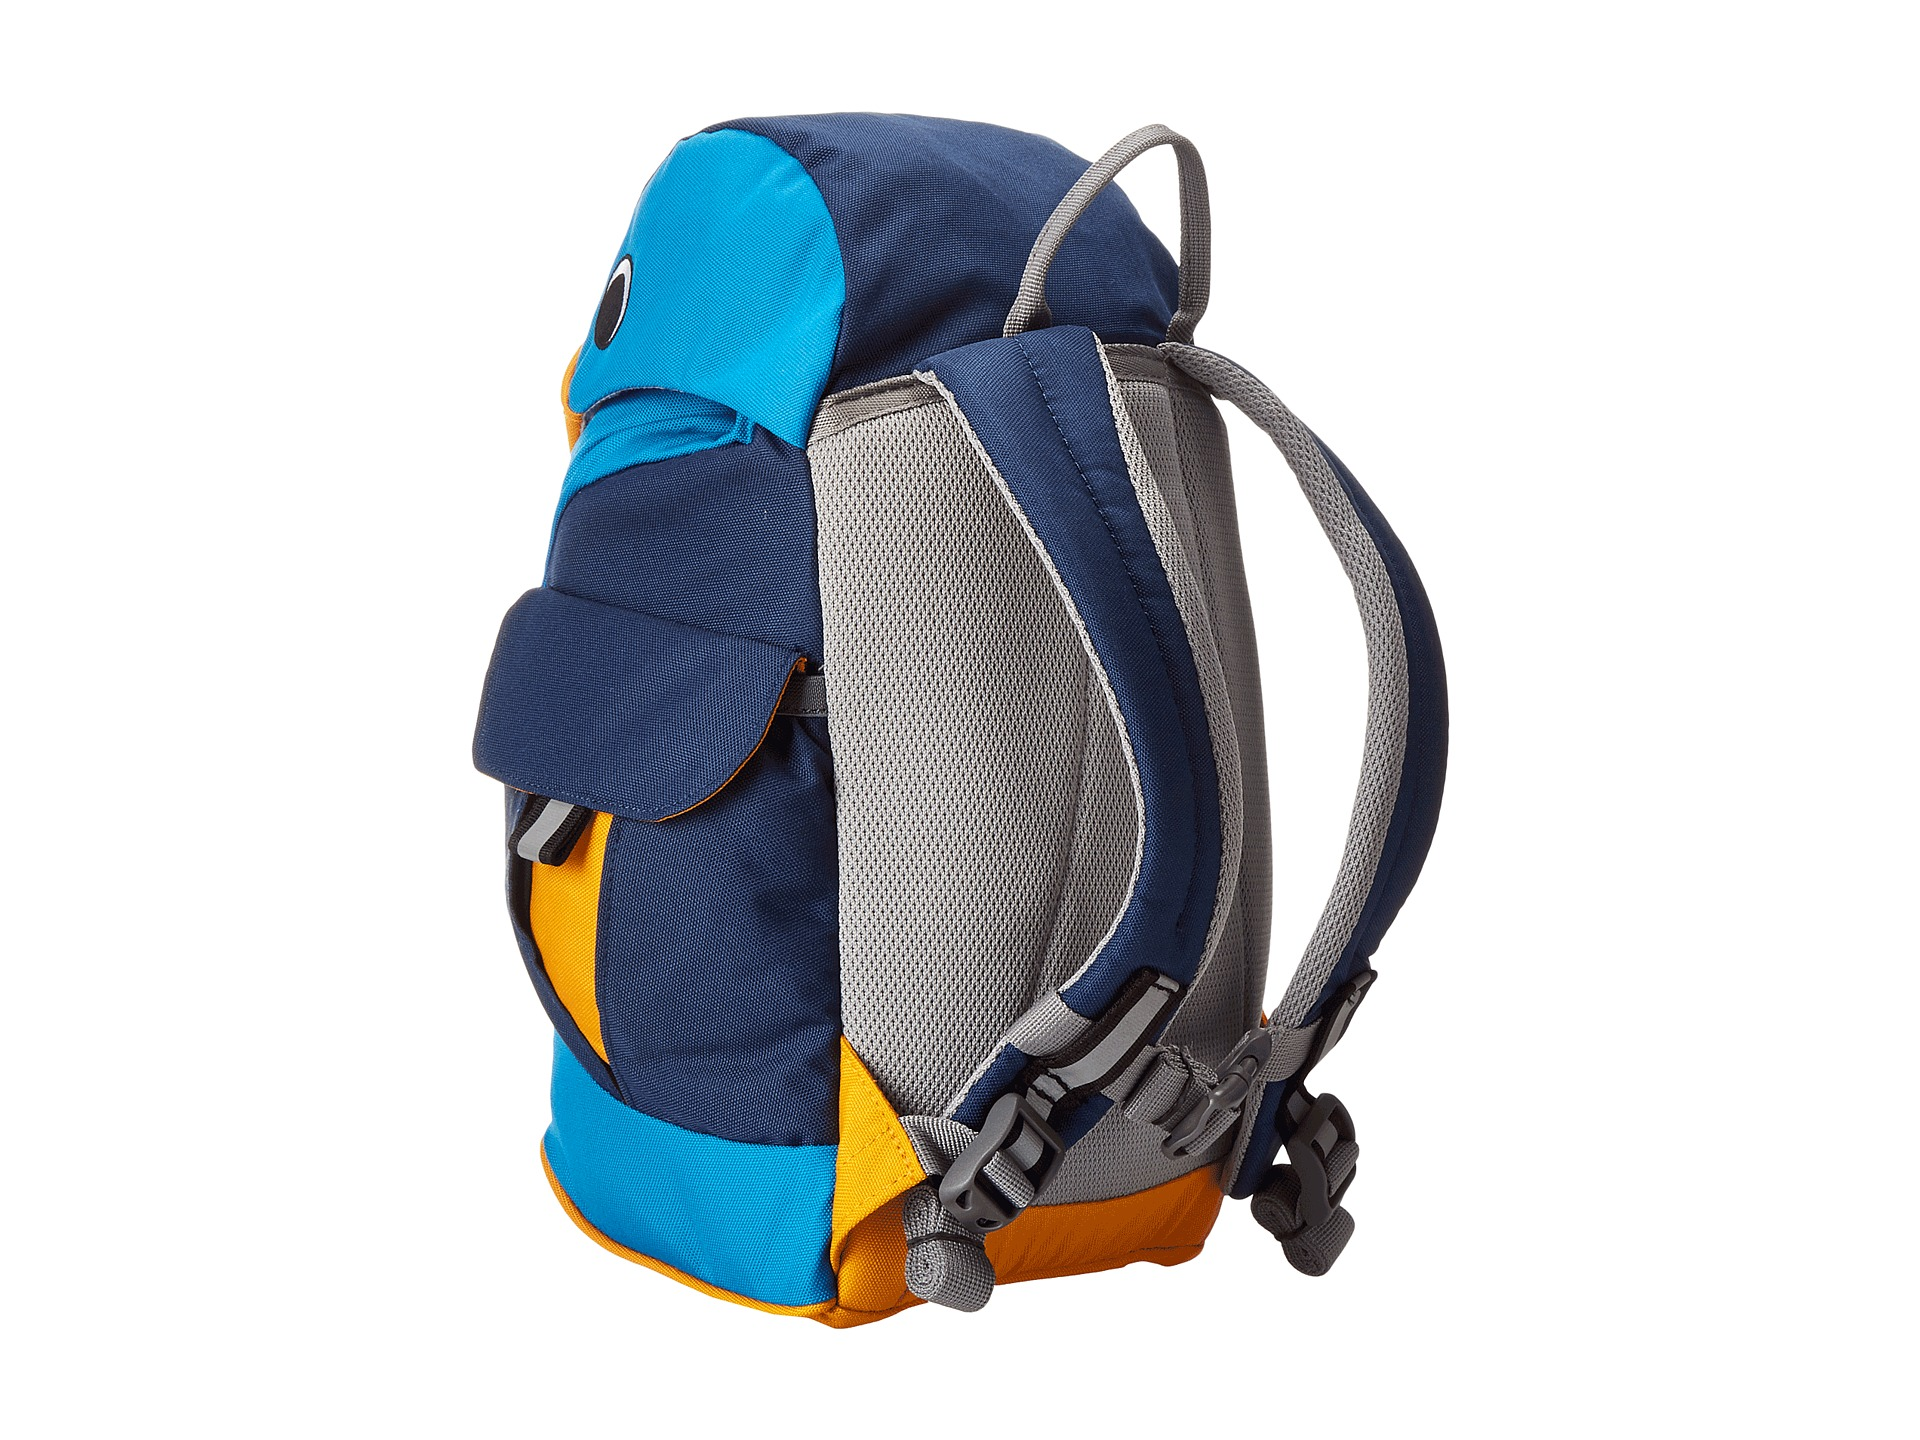 A blue children's backpack viewed from the back